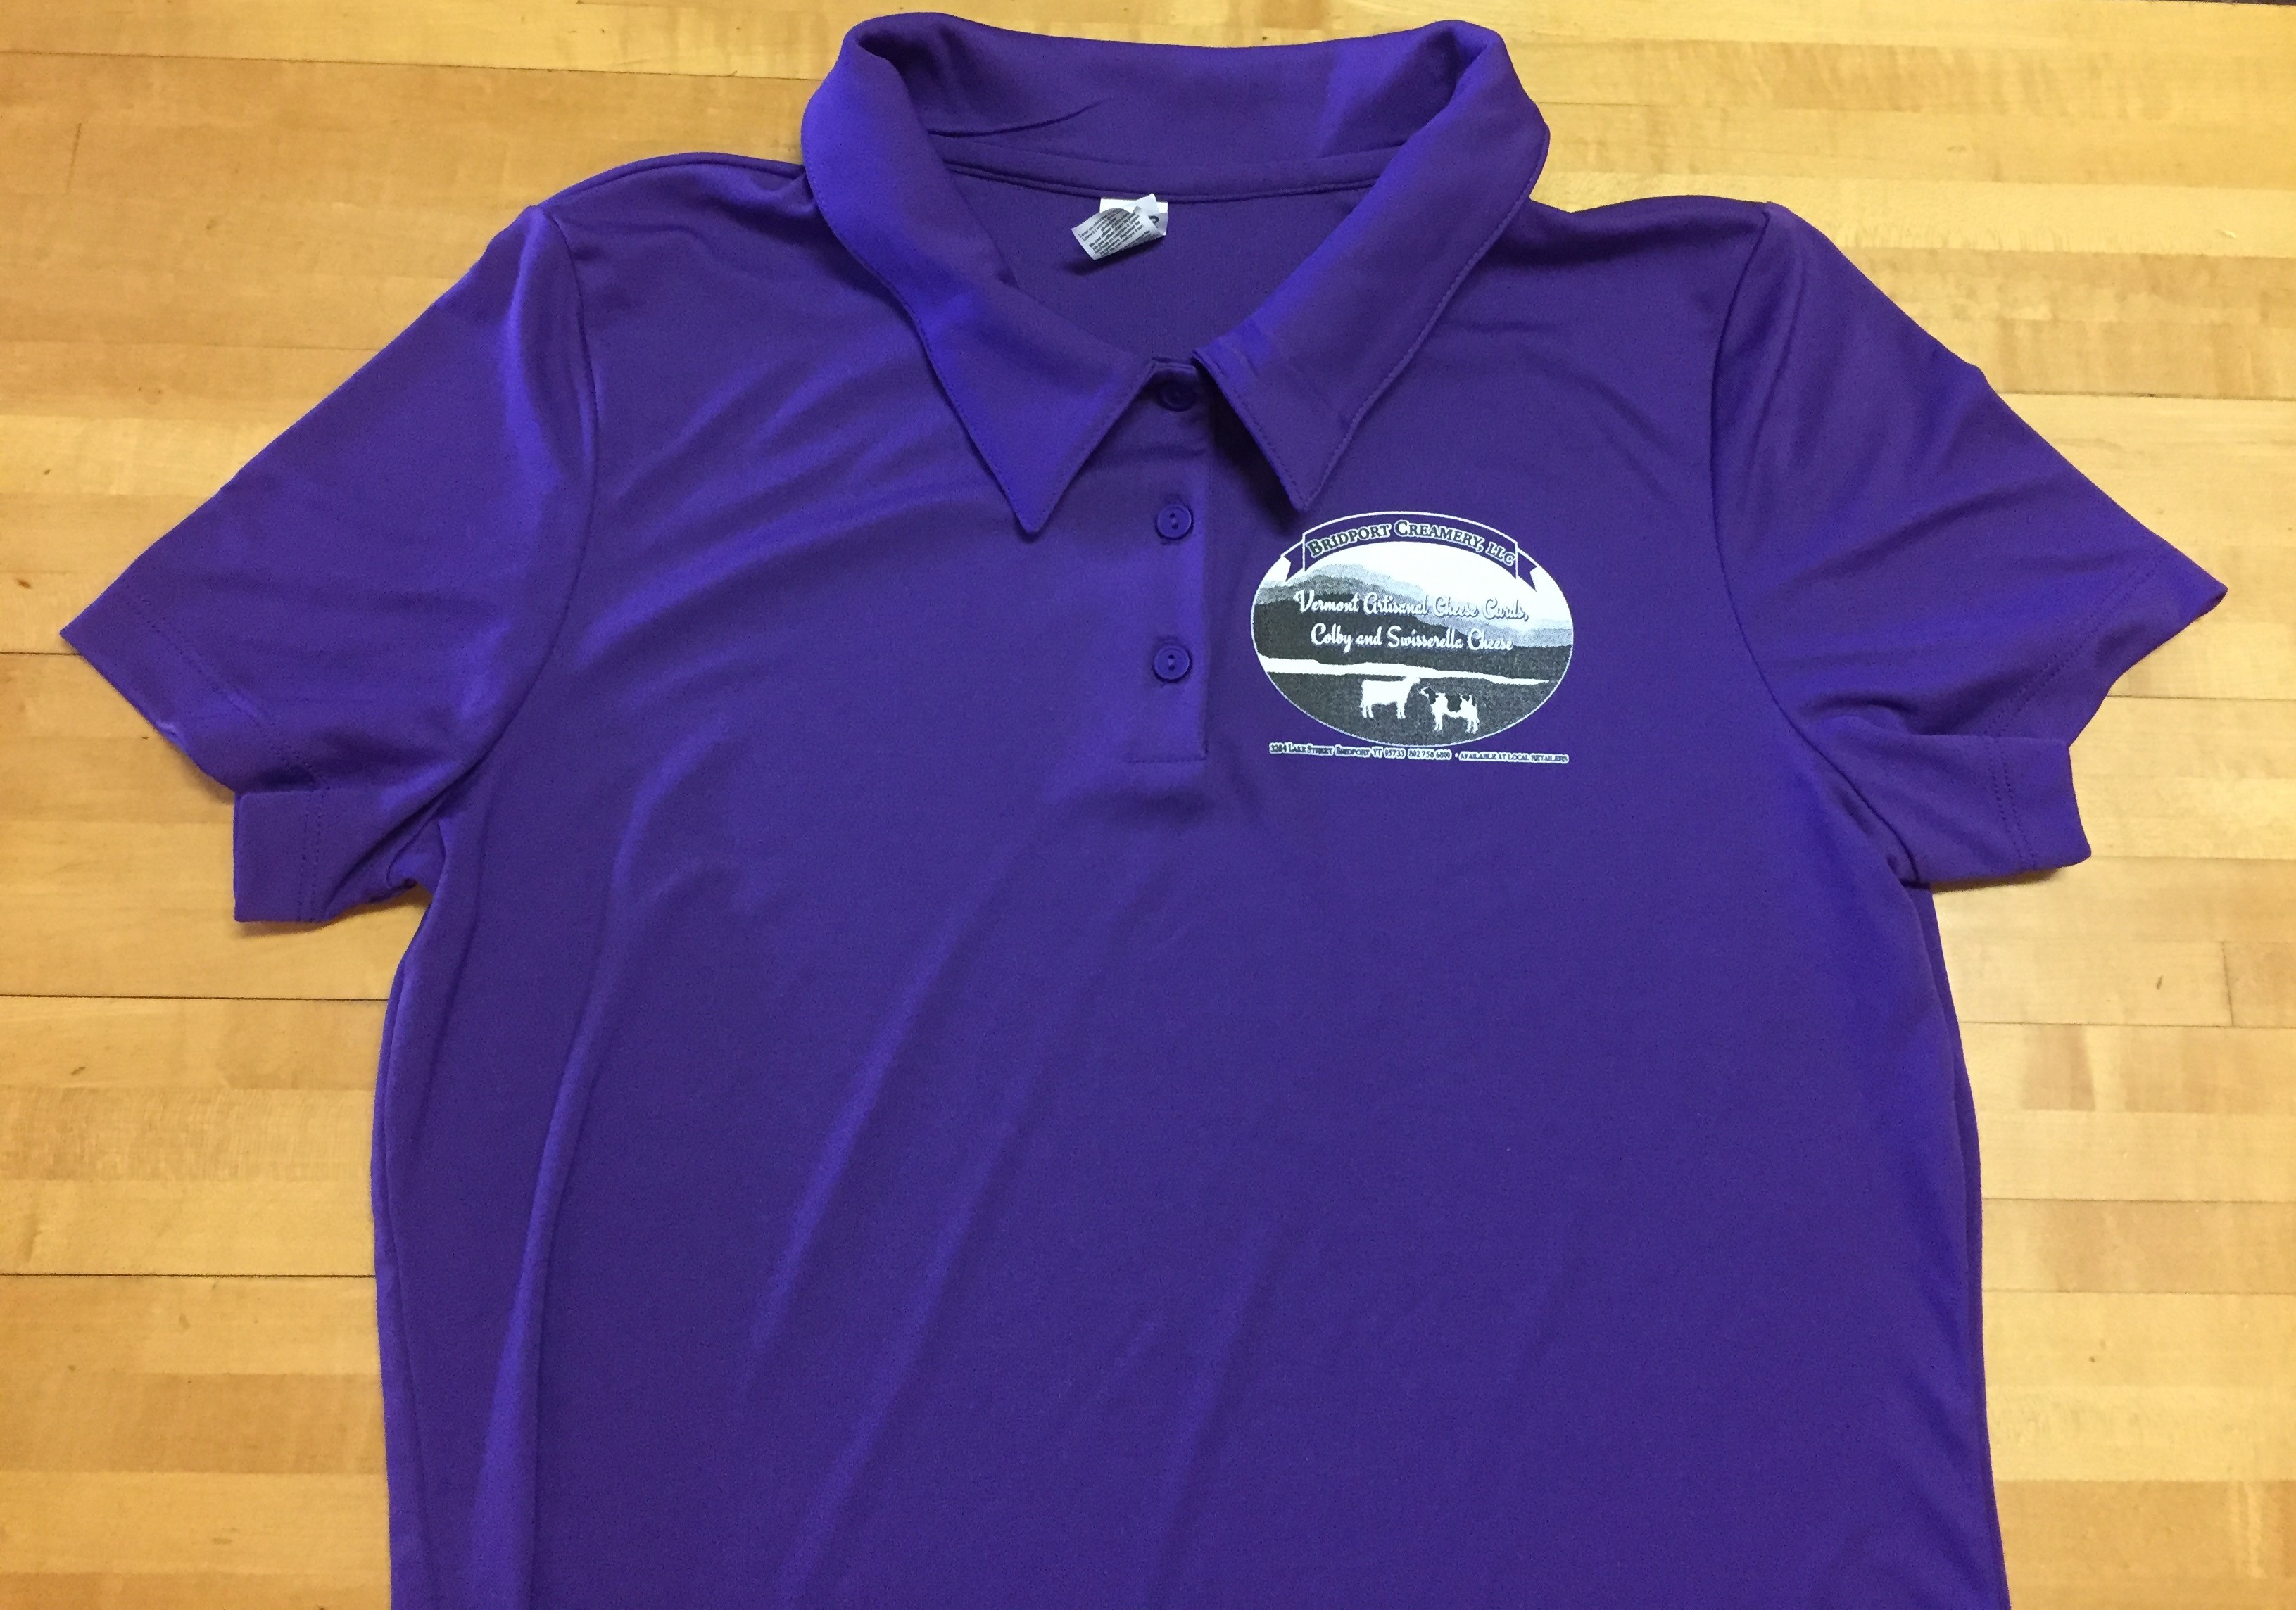 Bridport Creamery Final Purple Shirt